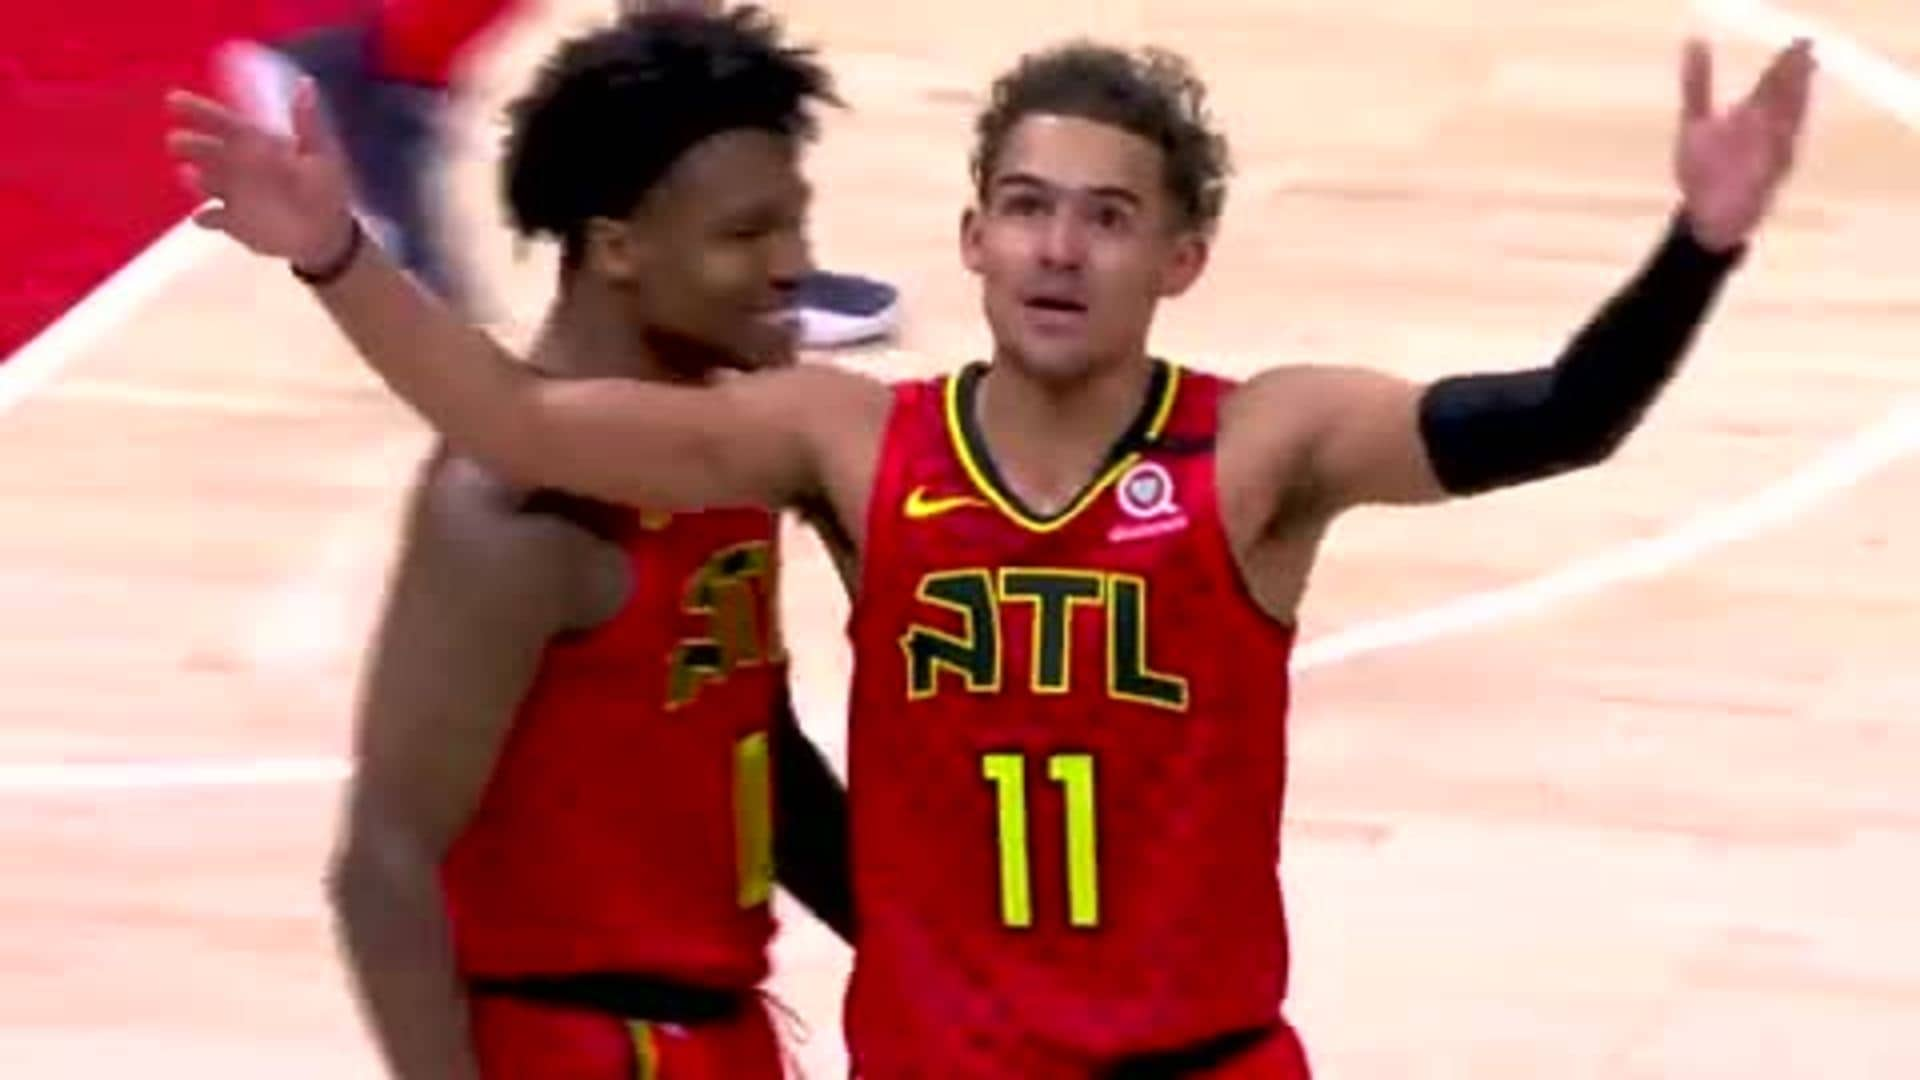 19-20 Season Rewind Presented by Gatorade: Trae Young's Top Plays